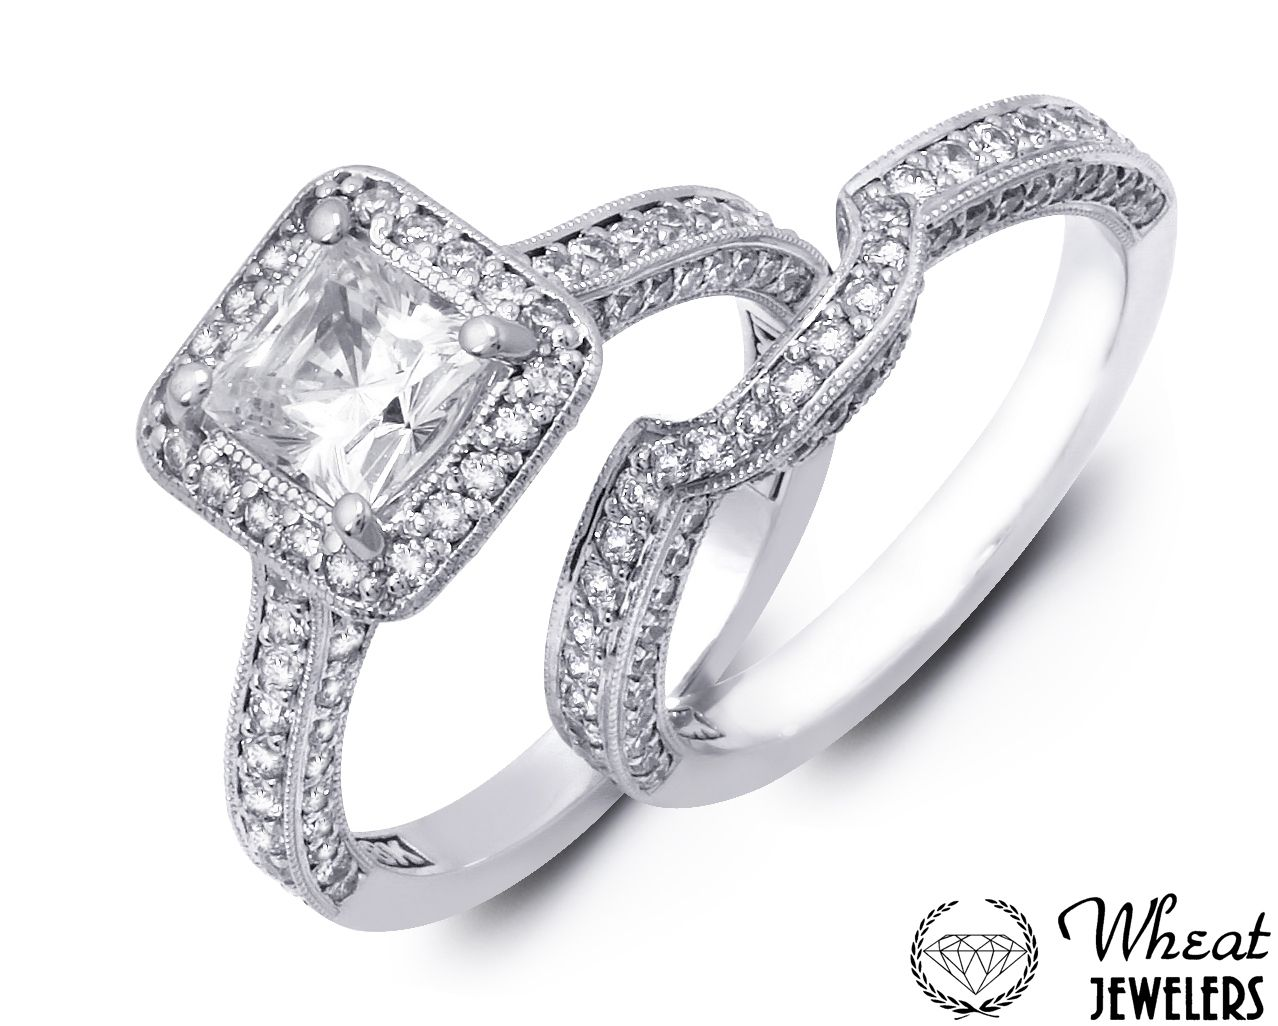 Square Halo Engagement Ring With Diamond Encrusted Band And Matching Wedding Available At Wheat Jewelers